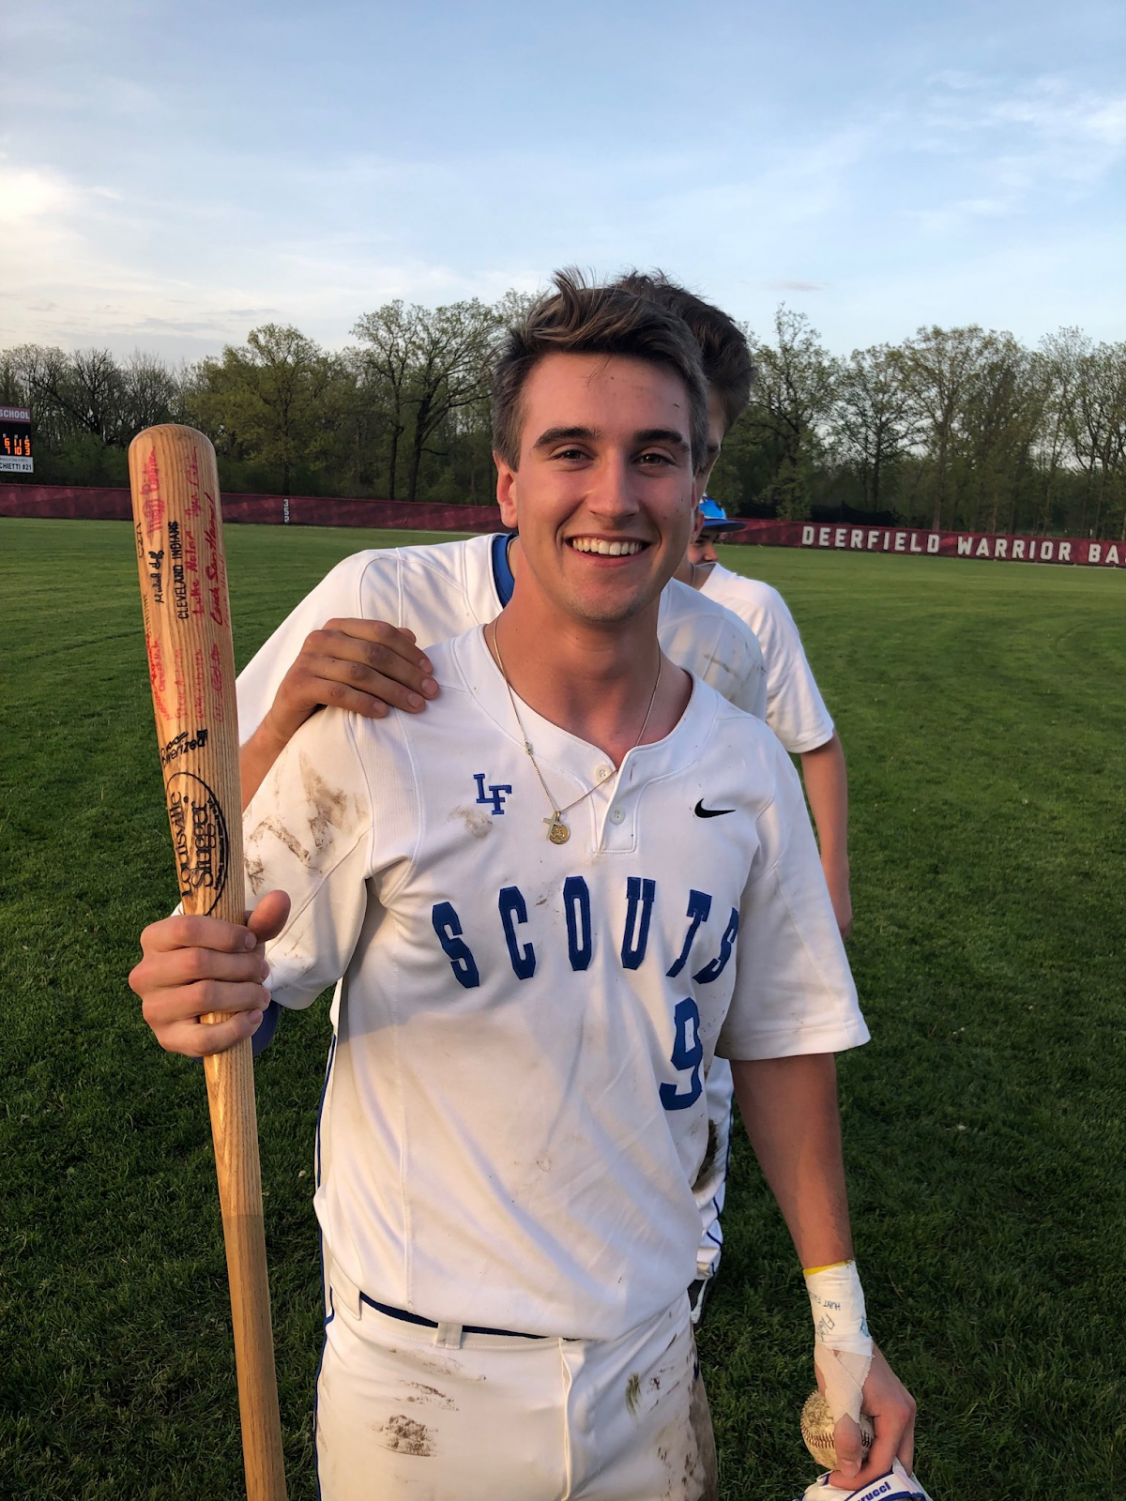 Colton Pfeifer with the Commitment Bat after the Scouts defeated Prospect, 7-6, in extra innings of Wednesday's regional semifinal game.